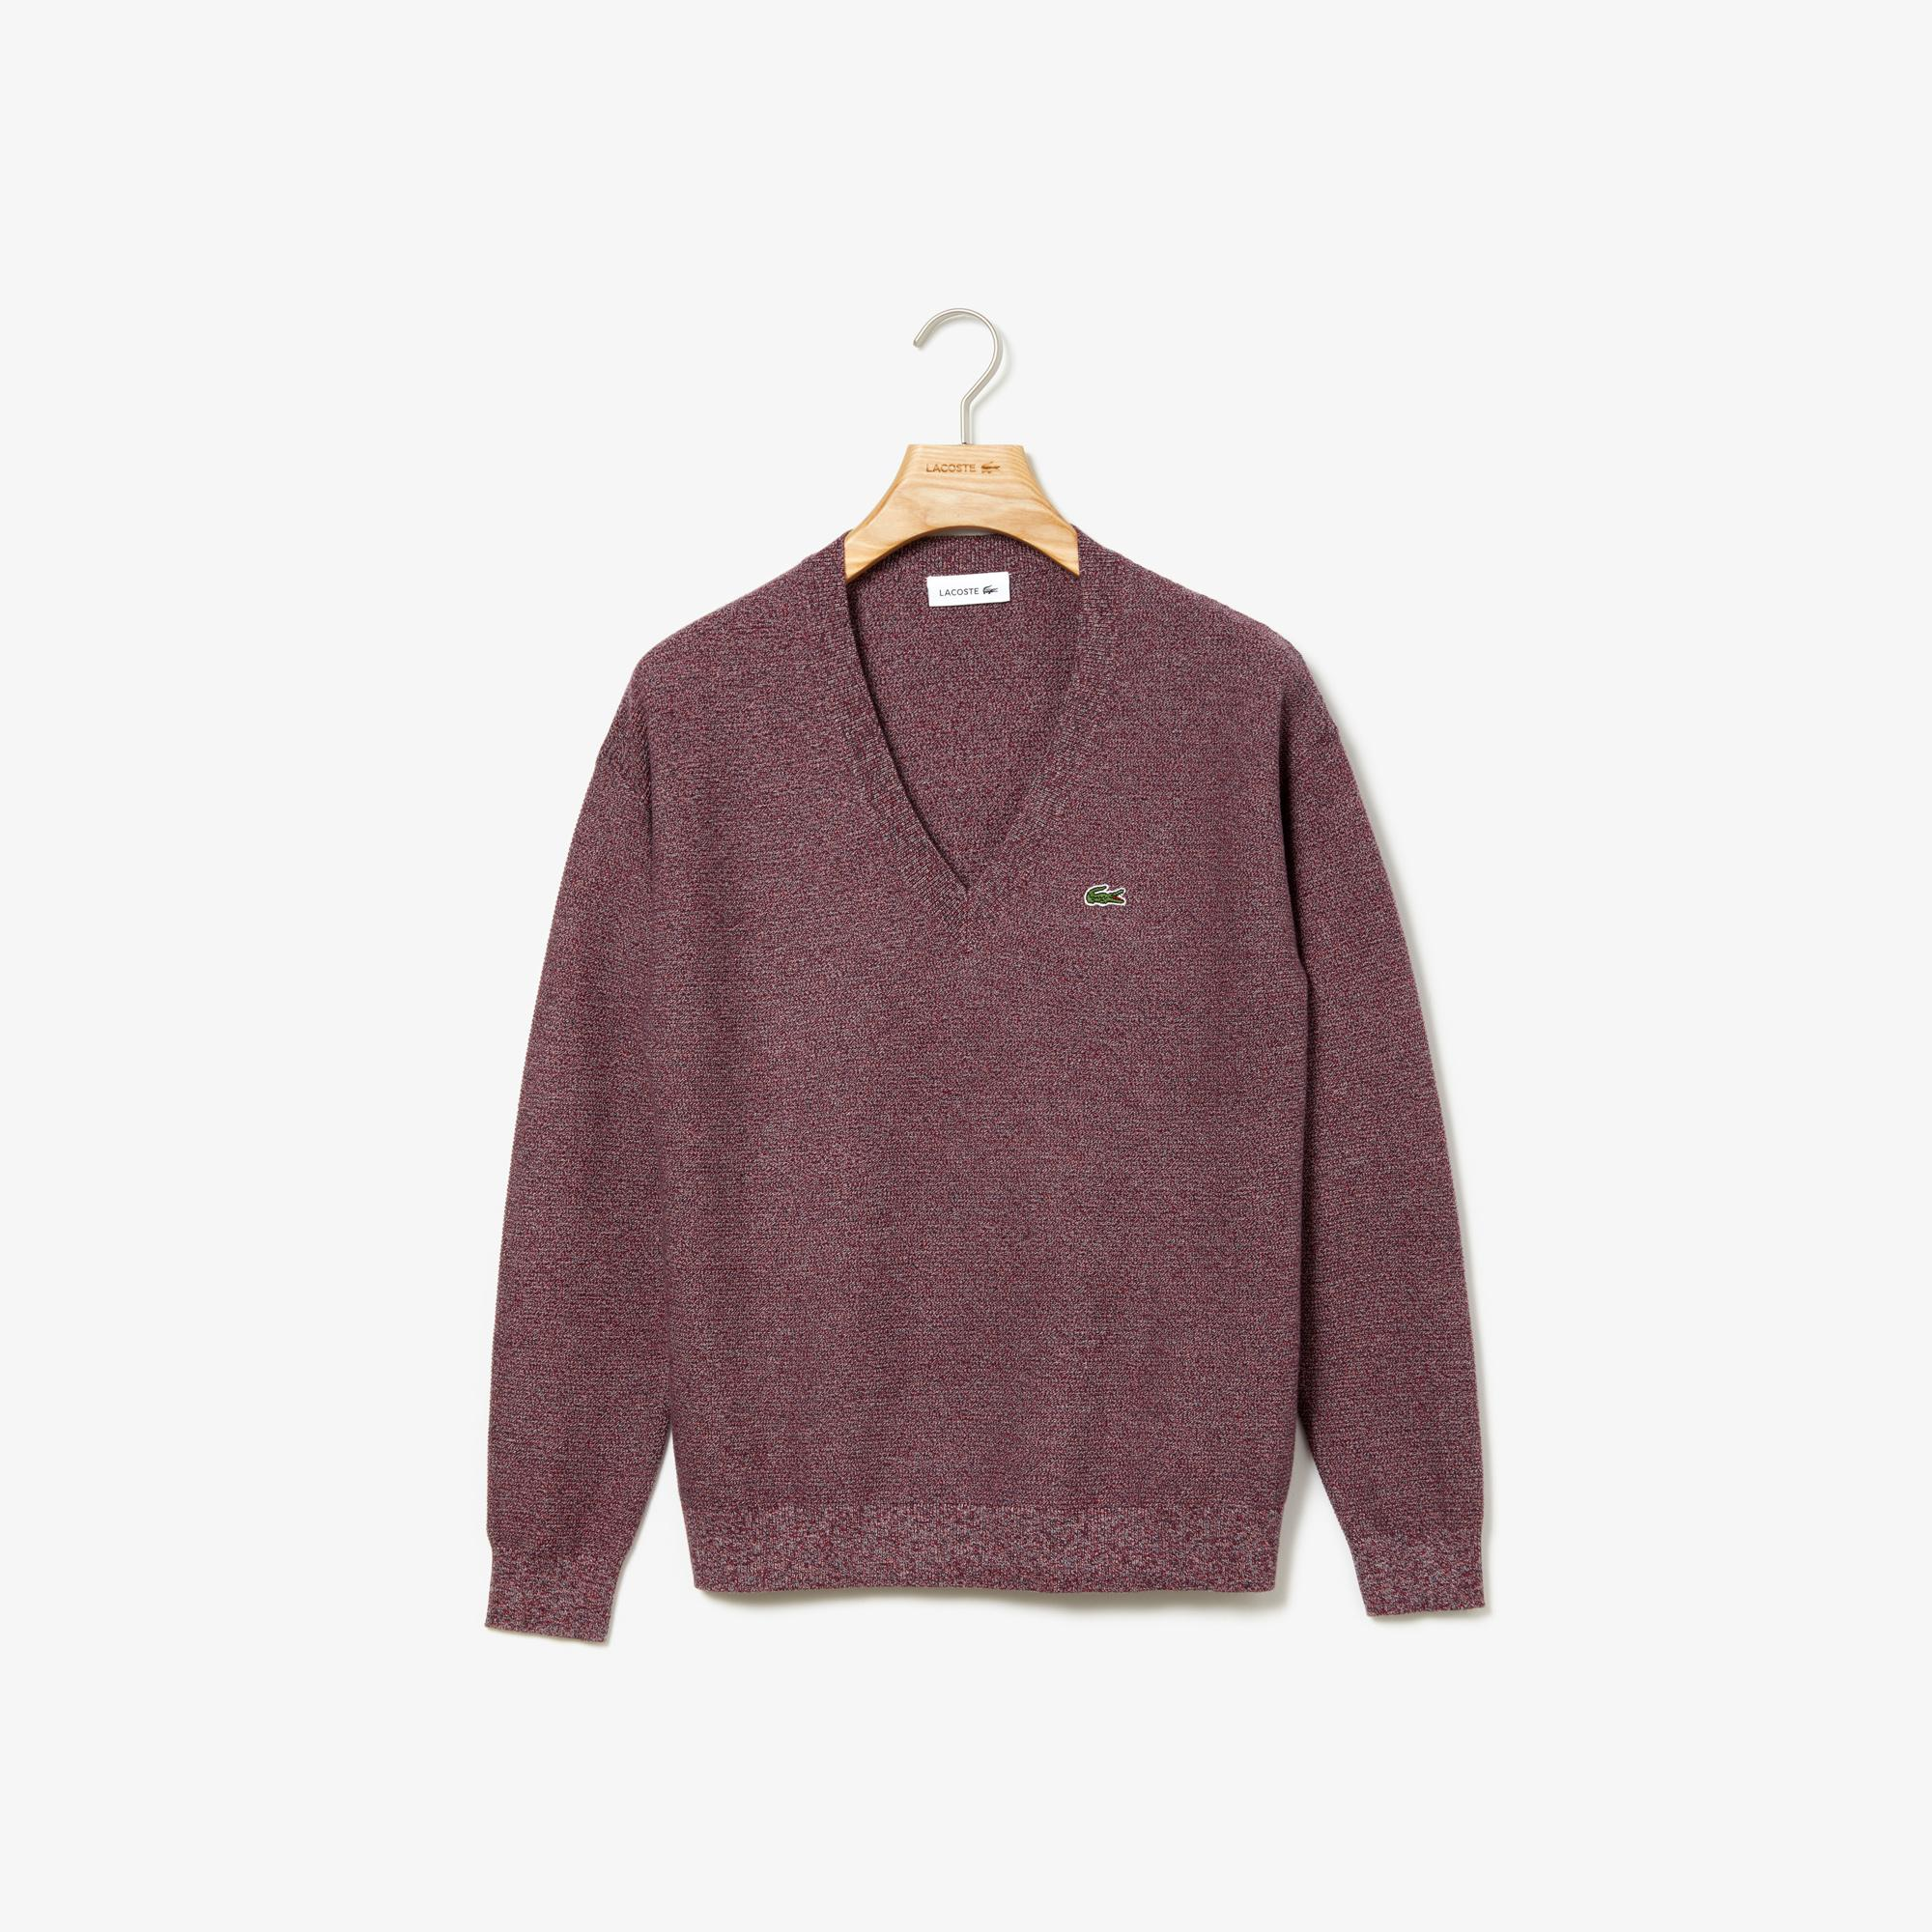 Lacoste Women's V-Neck Texturised Heathered Cotton Sweater